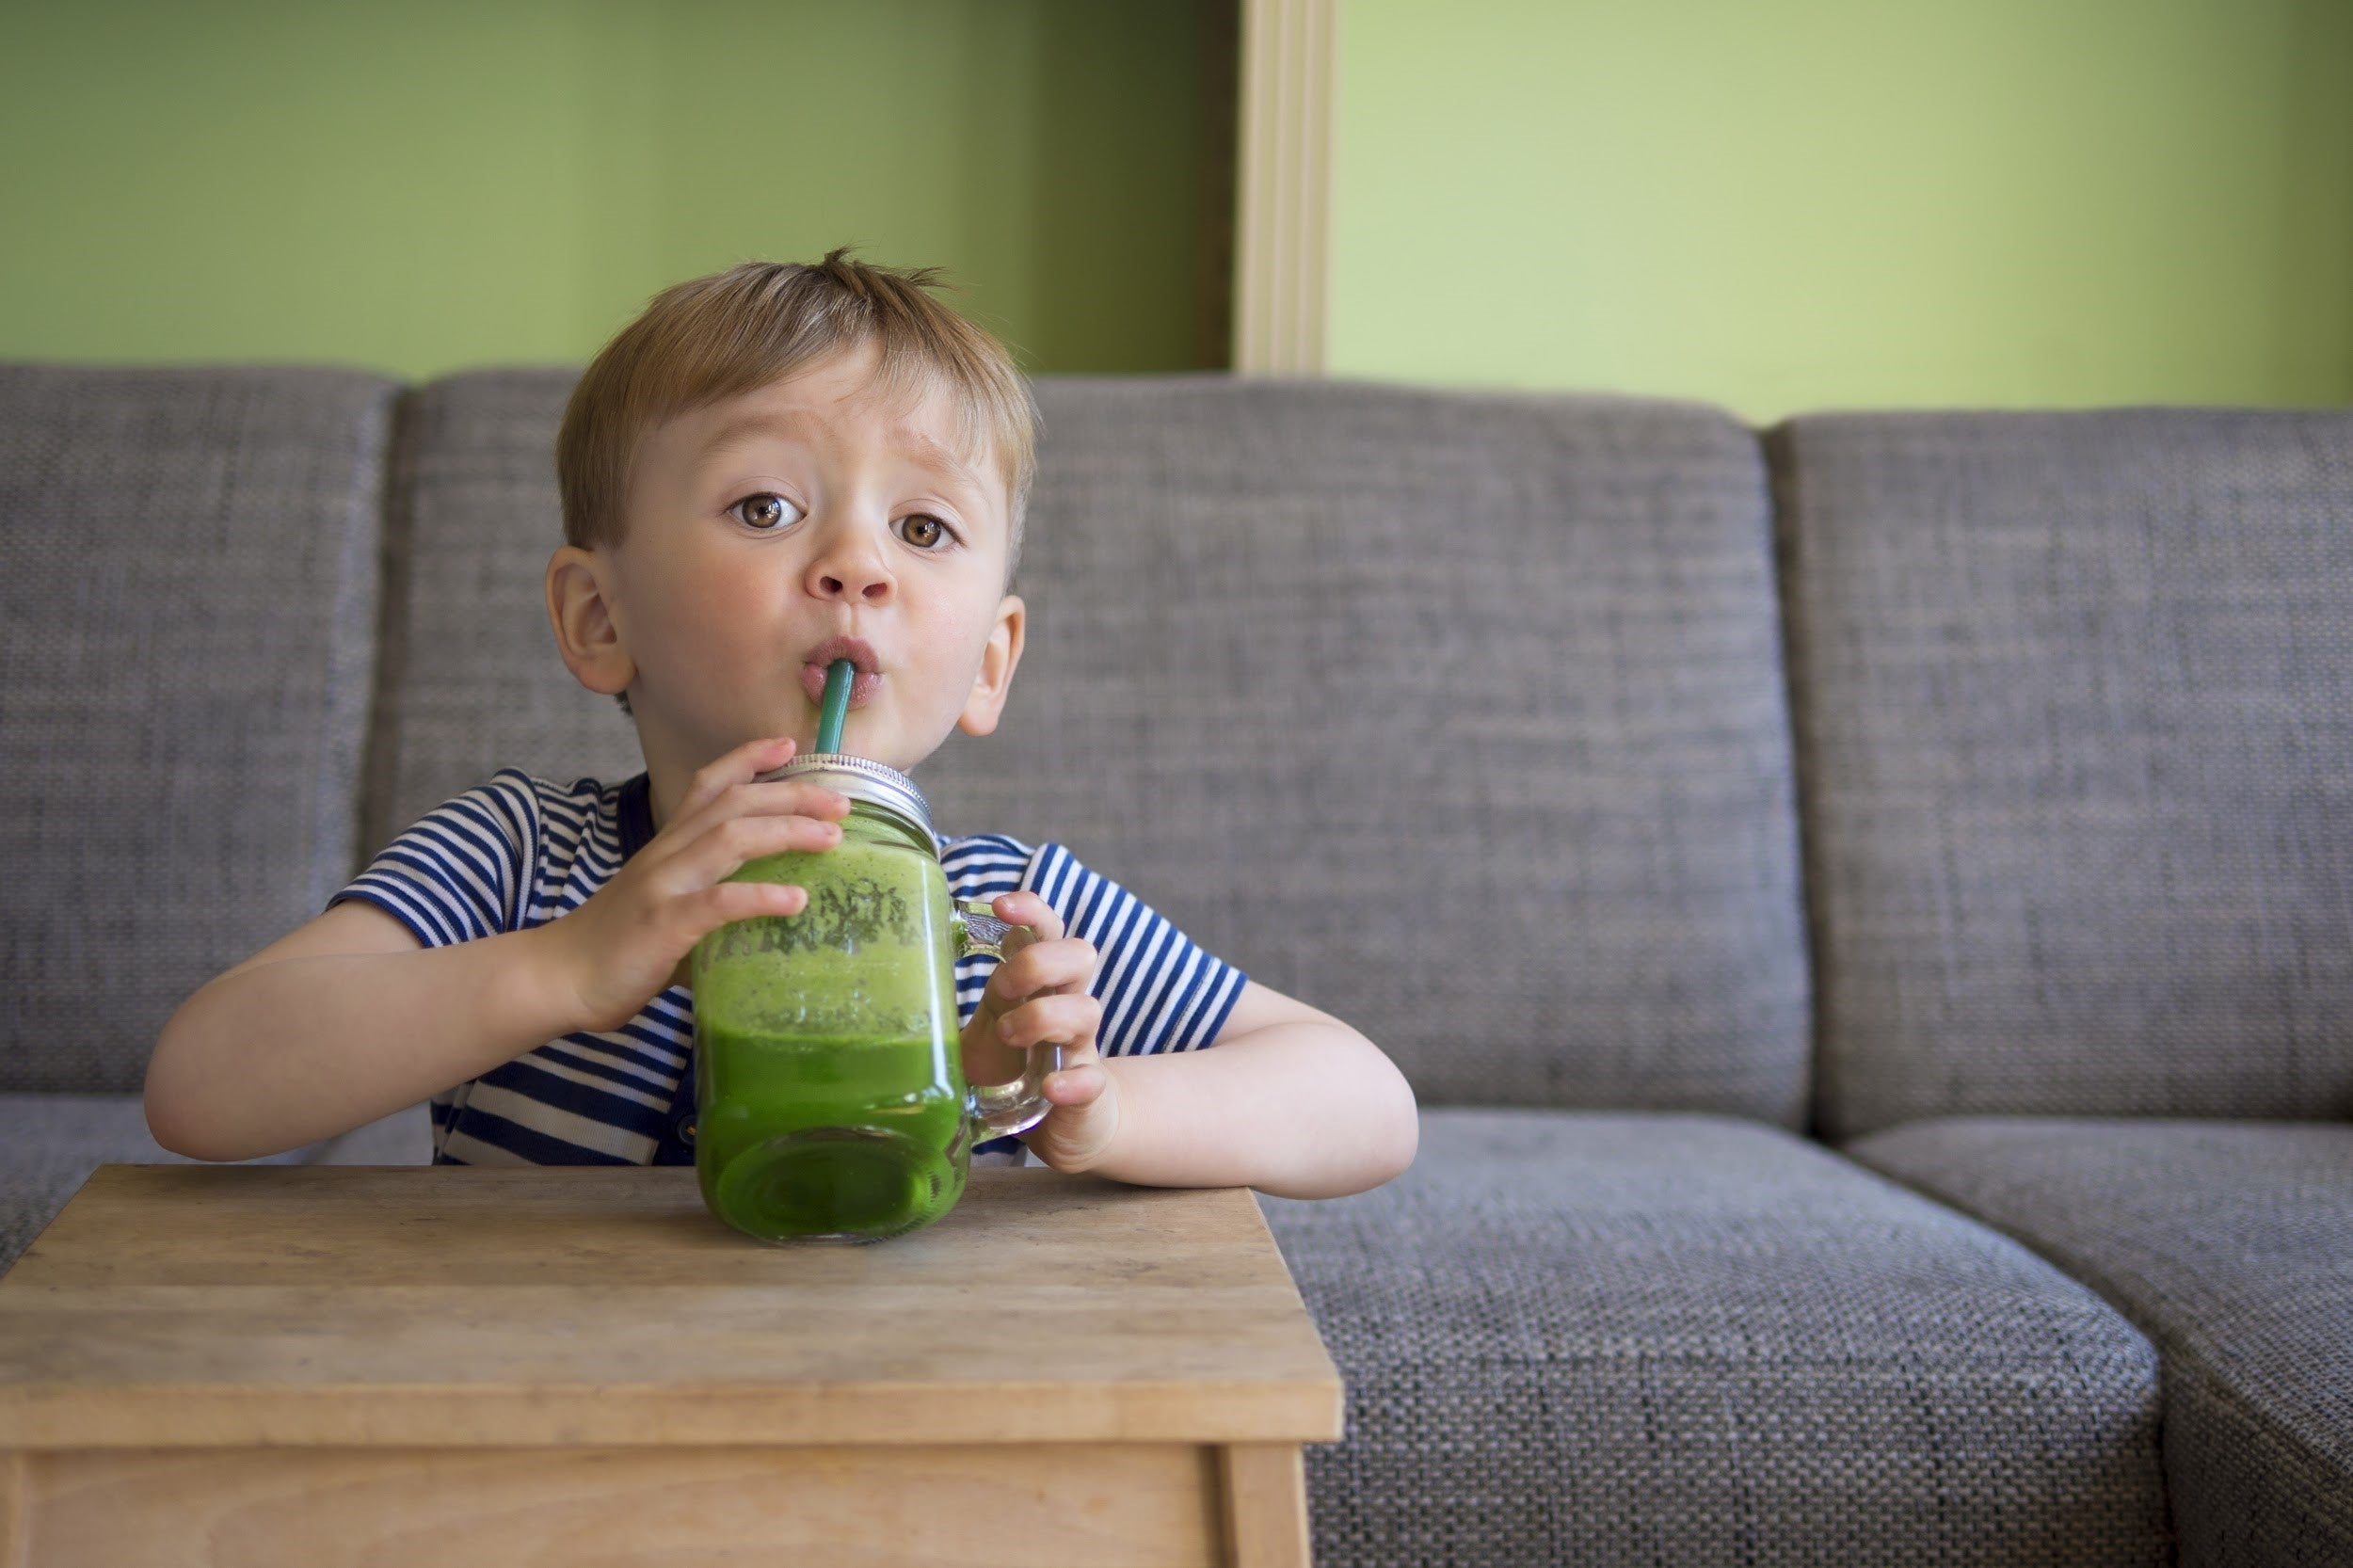 best foods for sick kids by illness - spinach/banana smoothie and leafy greens for aches and pain